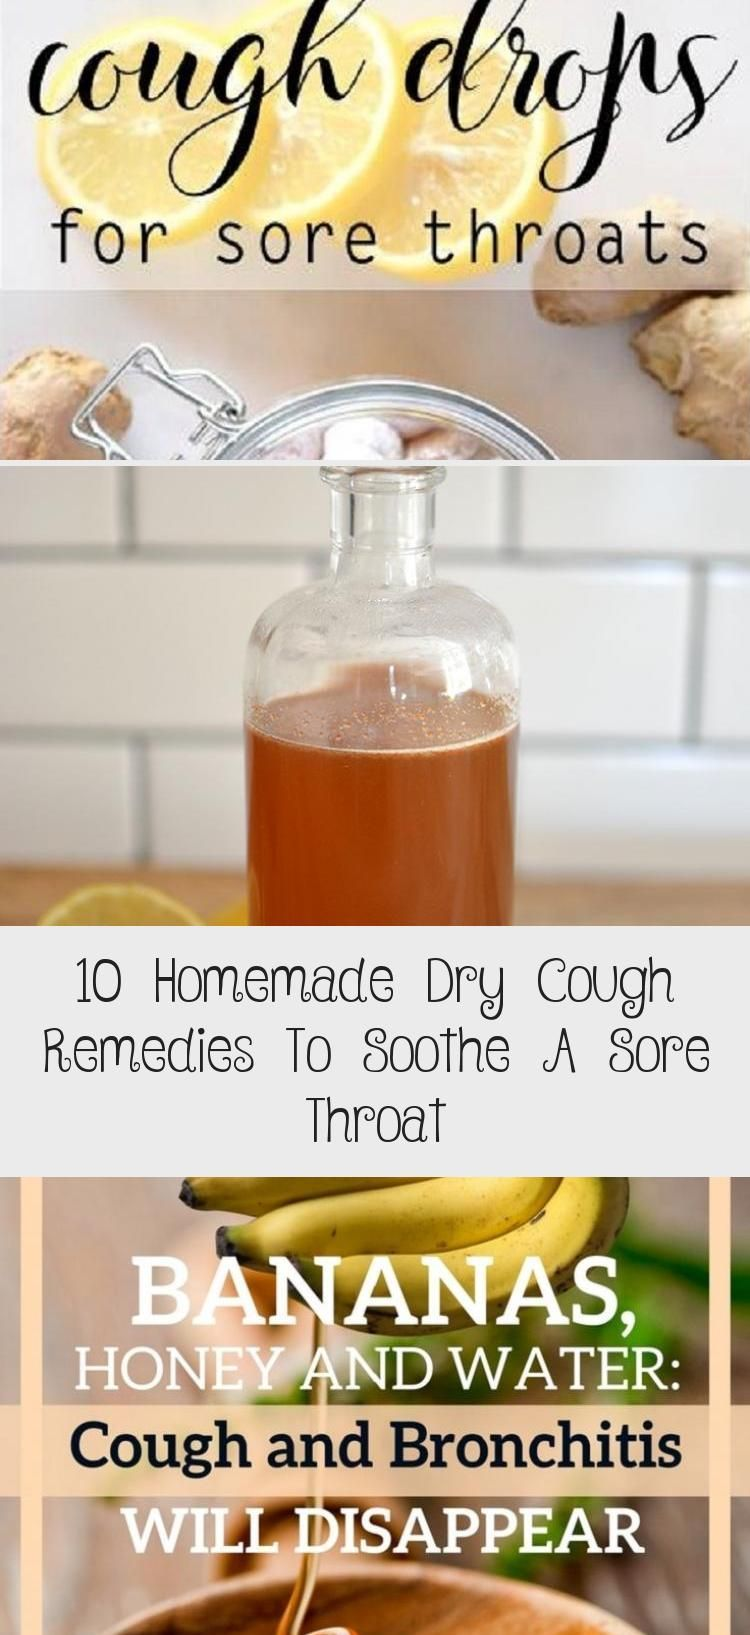 Pin by My Info on homemade remedies in 2020 Dry cough